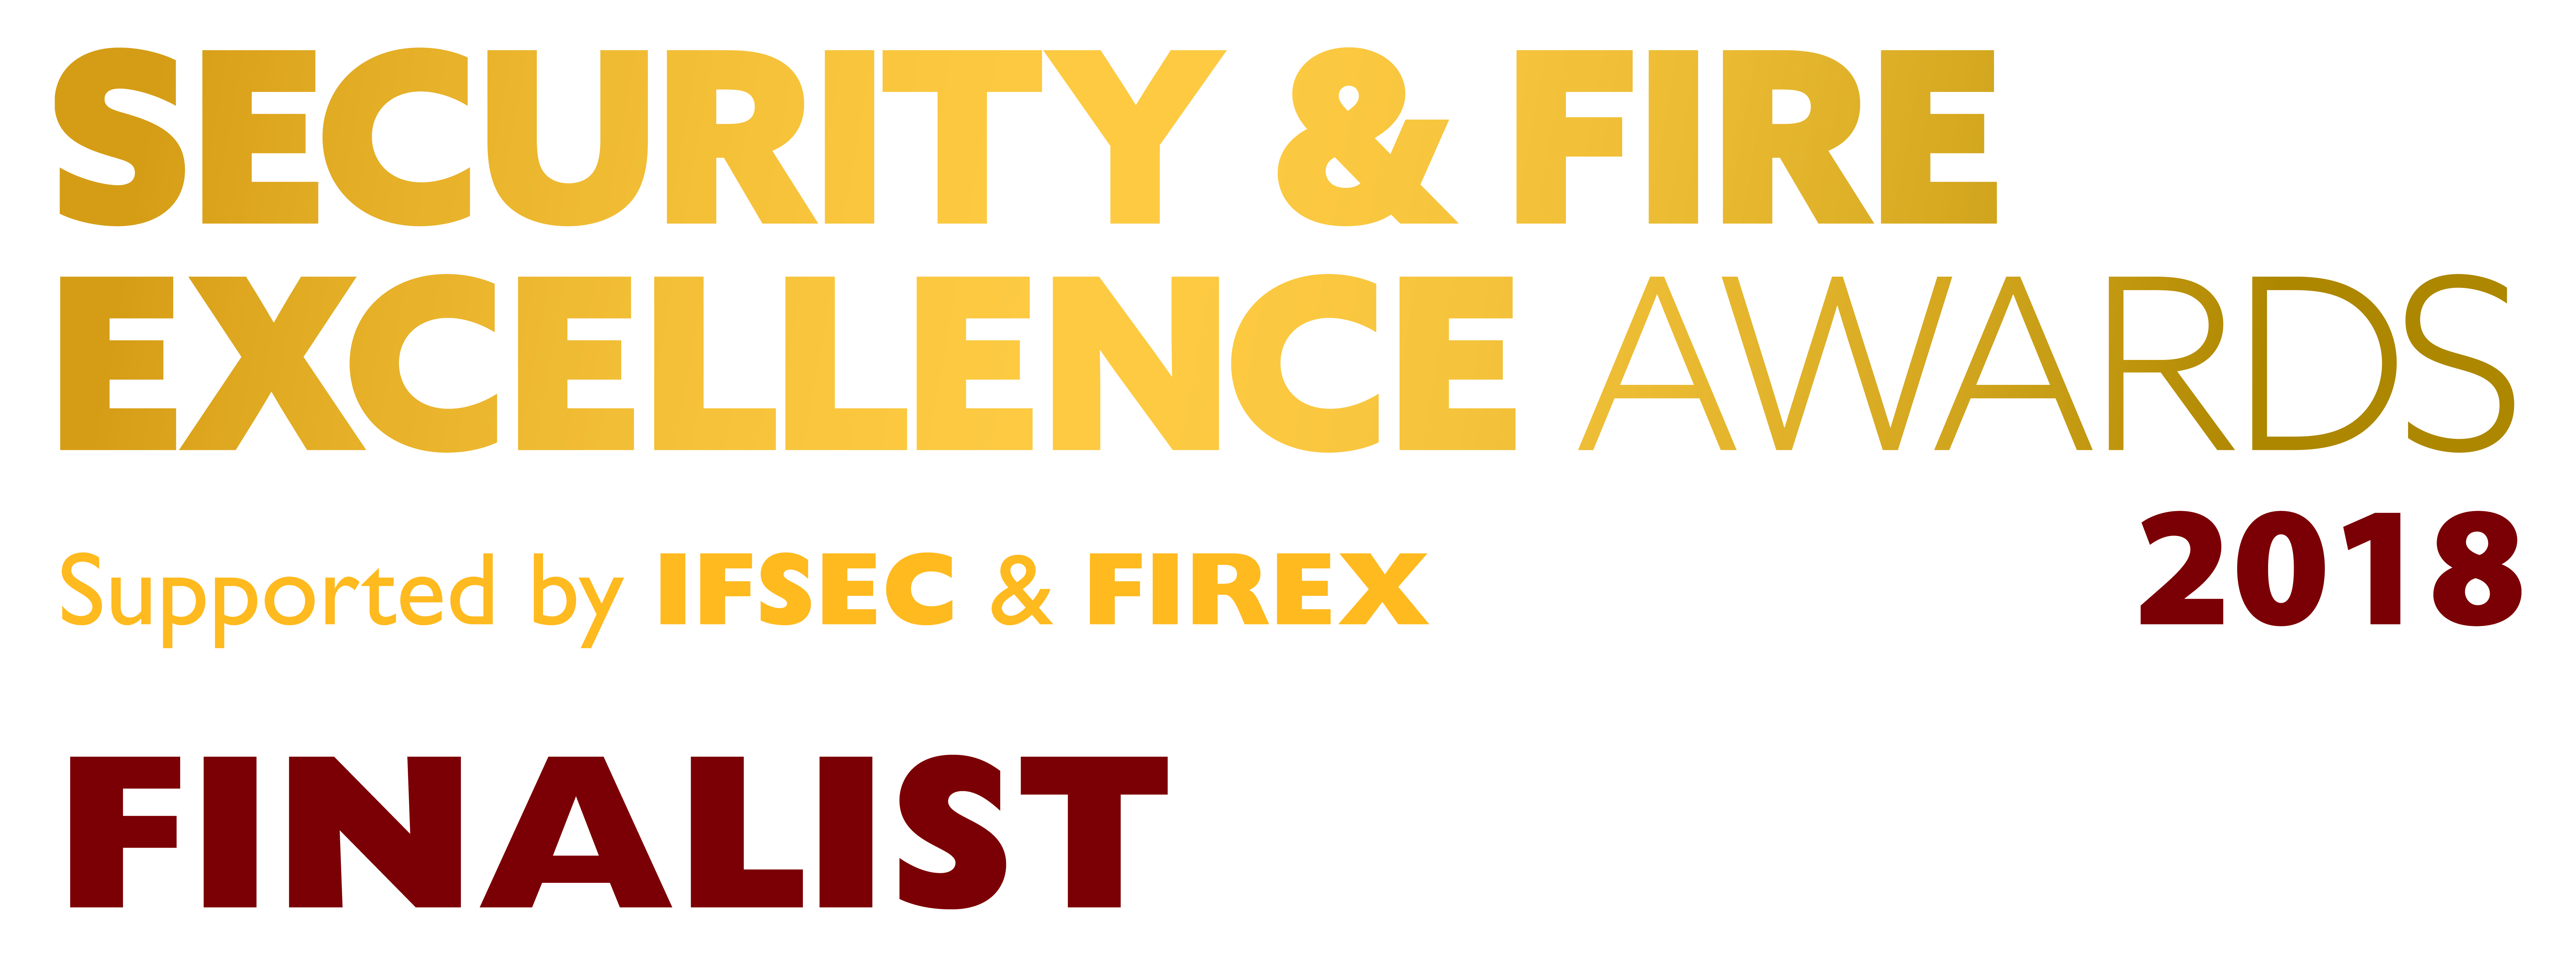 7084 Security & Fire Excellence Awards logo 2018